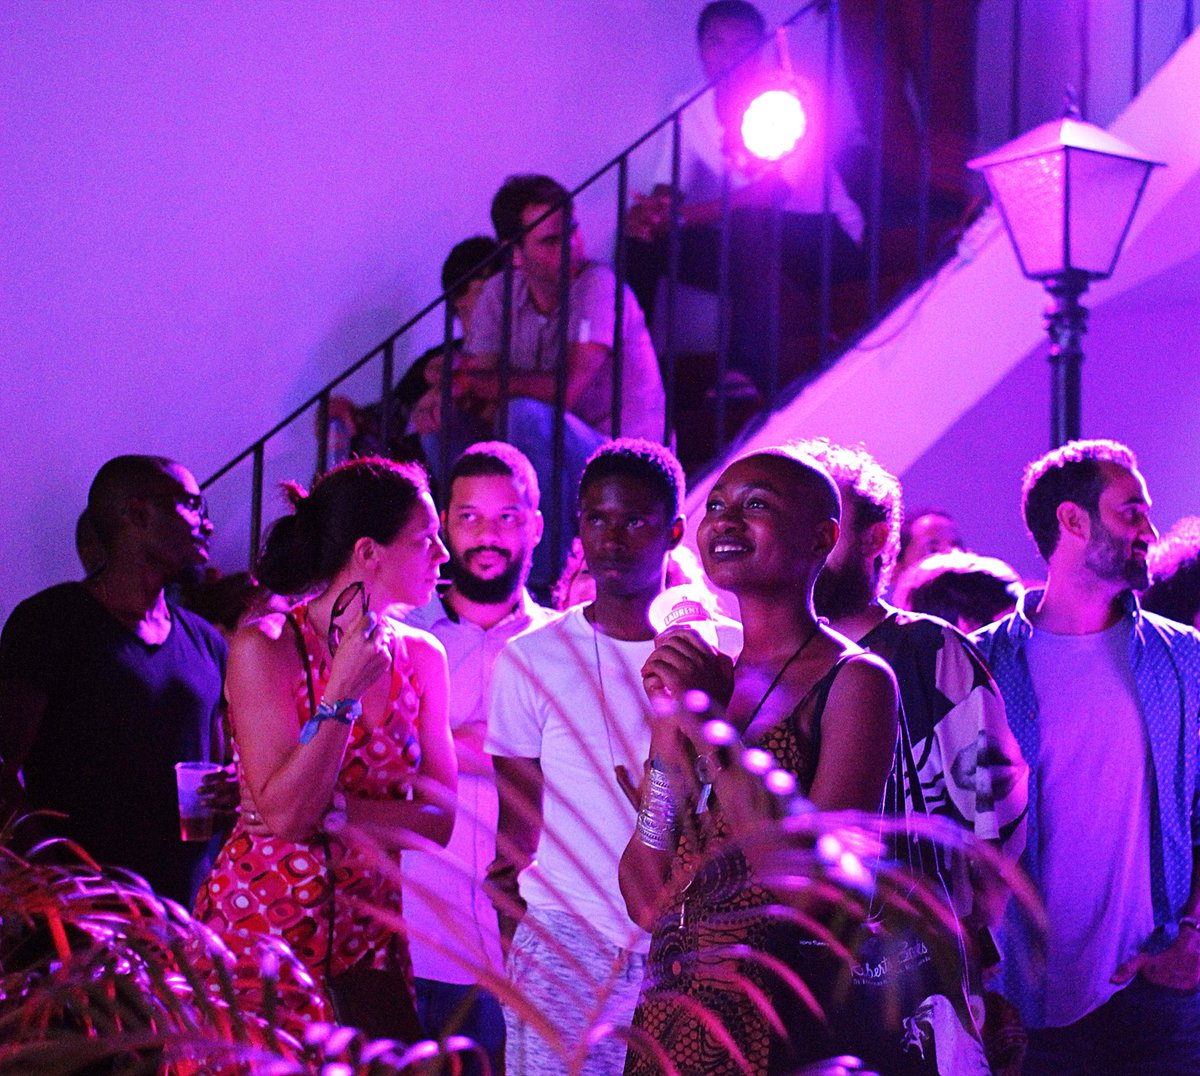 test Twitter Media - Recap from our #wonalivesessions at Centro Cultural Brasil Moçambique, February 2018.  #wonaistosee #akumagency #kongoloti #cervejasdemocambique #jamesonmoz #ccbm #music #livemusic #alternativemusic #concert #musicconcert #maputo #mozambique https://t.co/EqDGcX4mWr